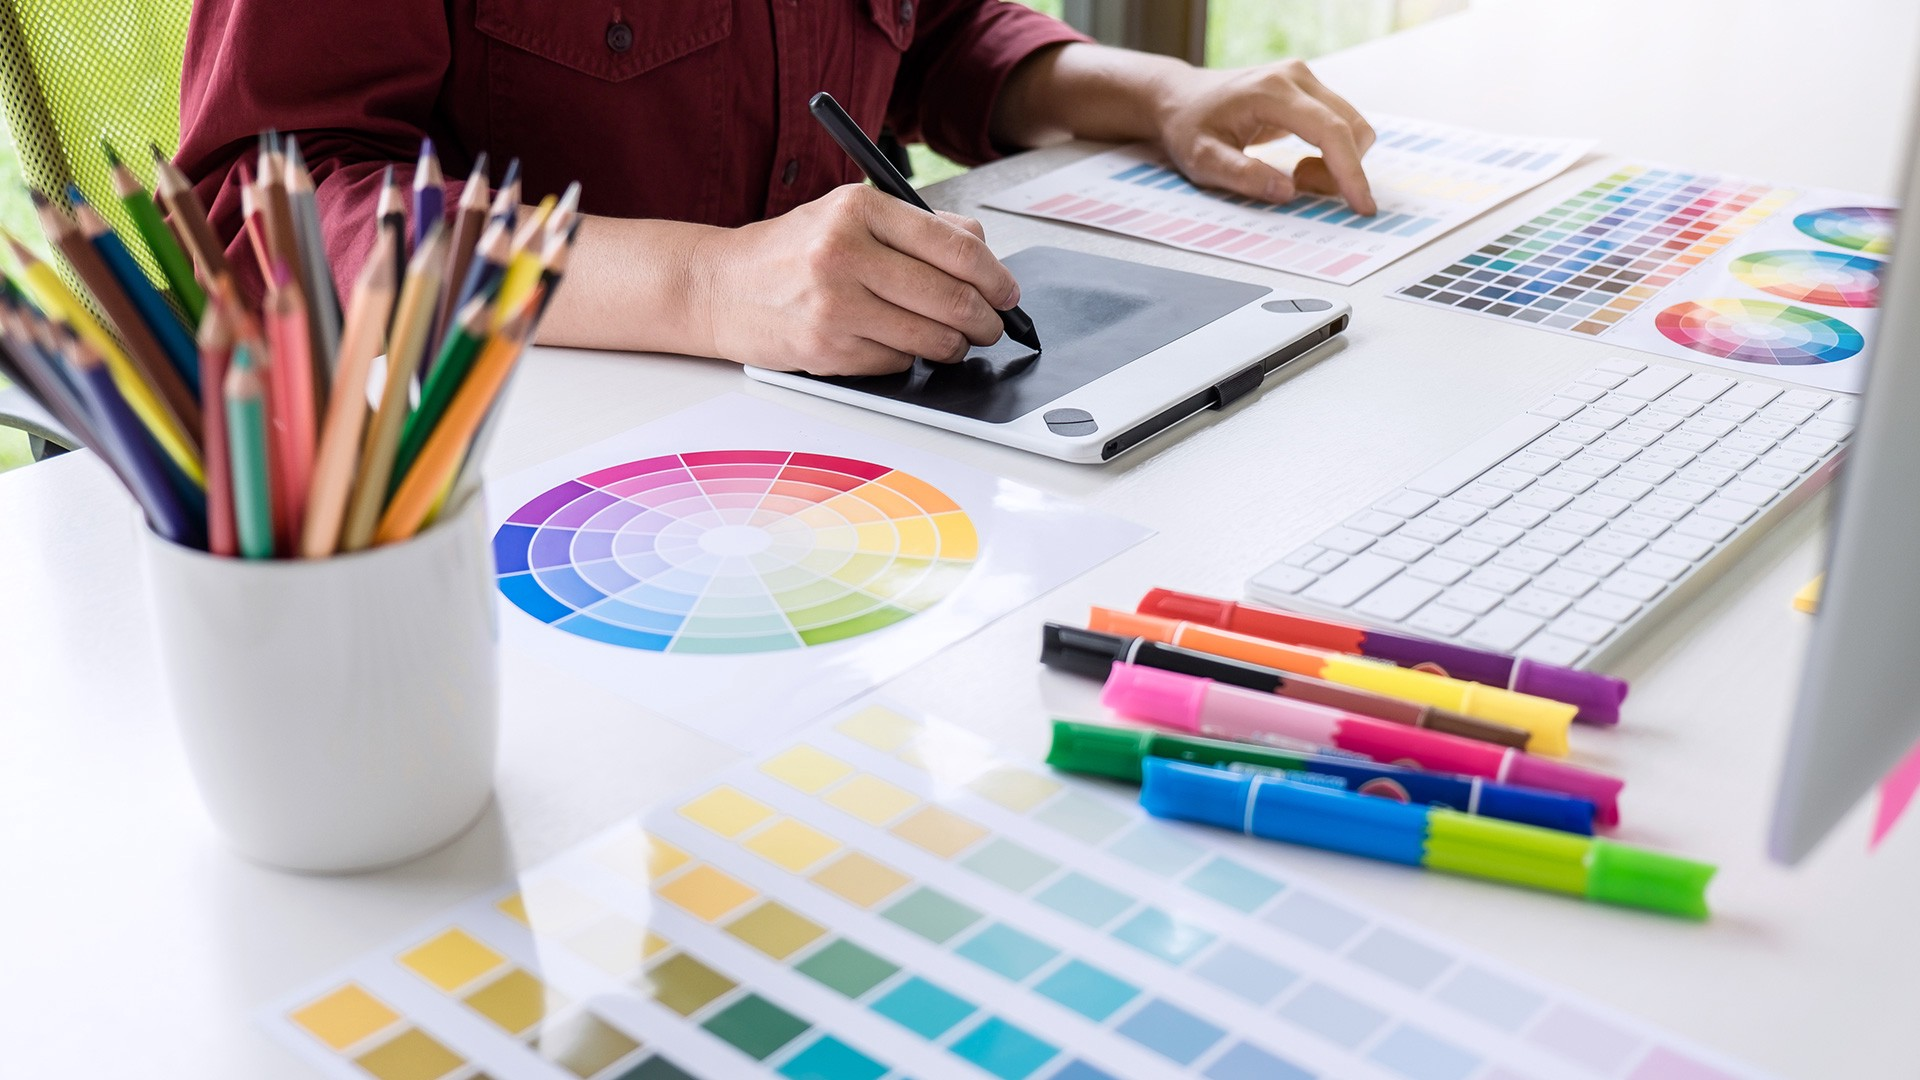 How Much Does it Cost to Learn Graphic Design in the UK ?